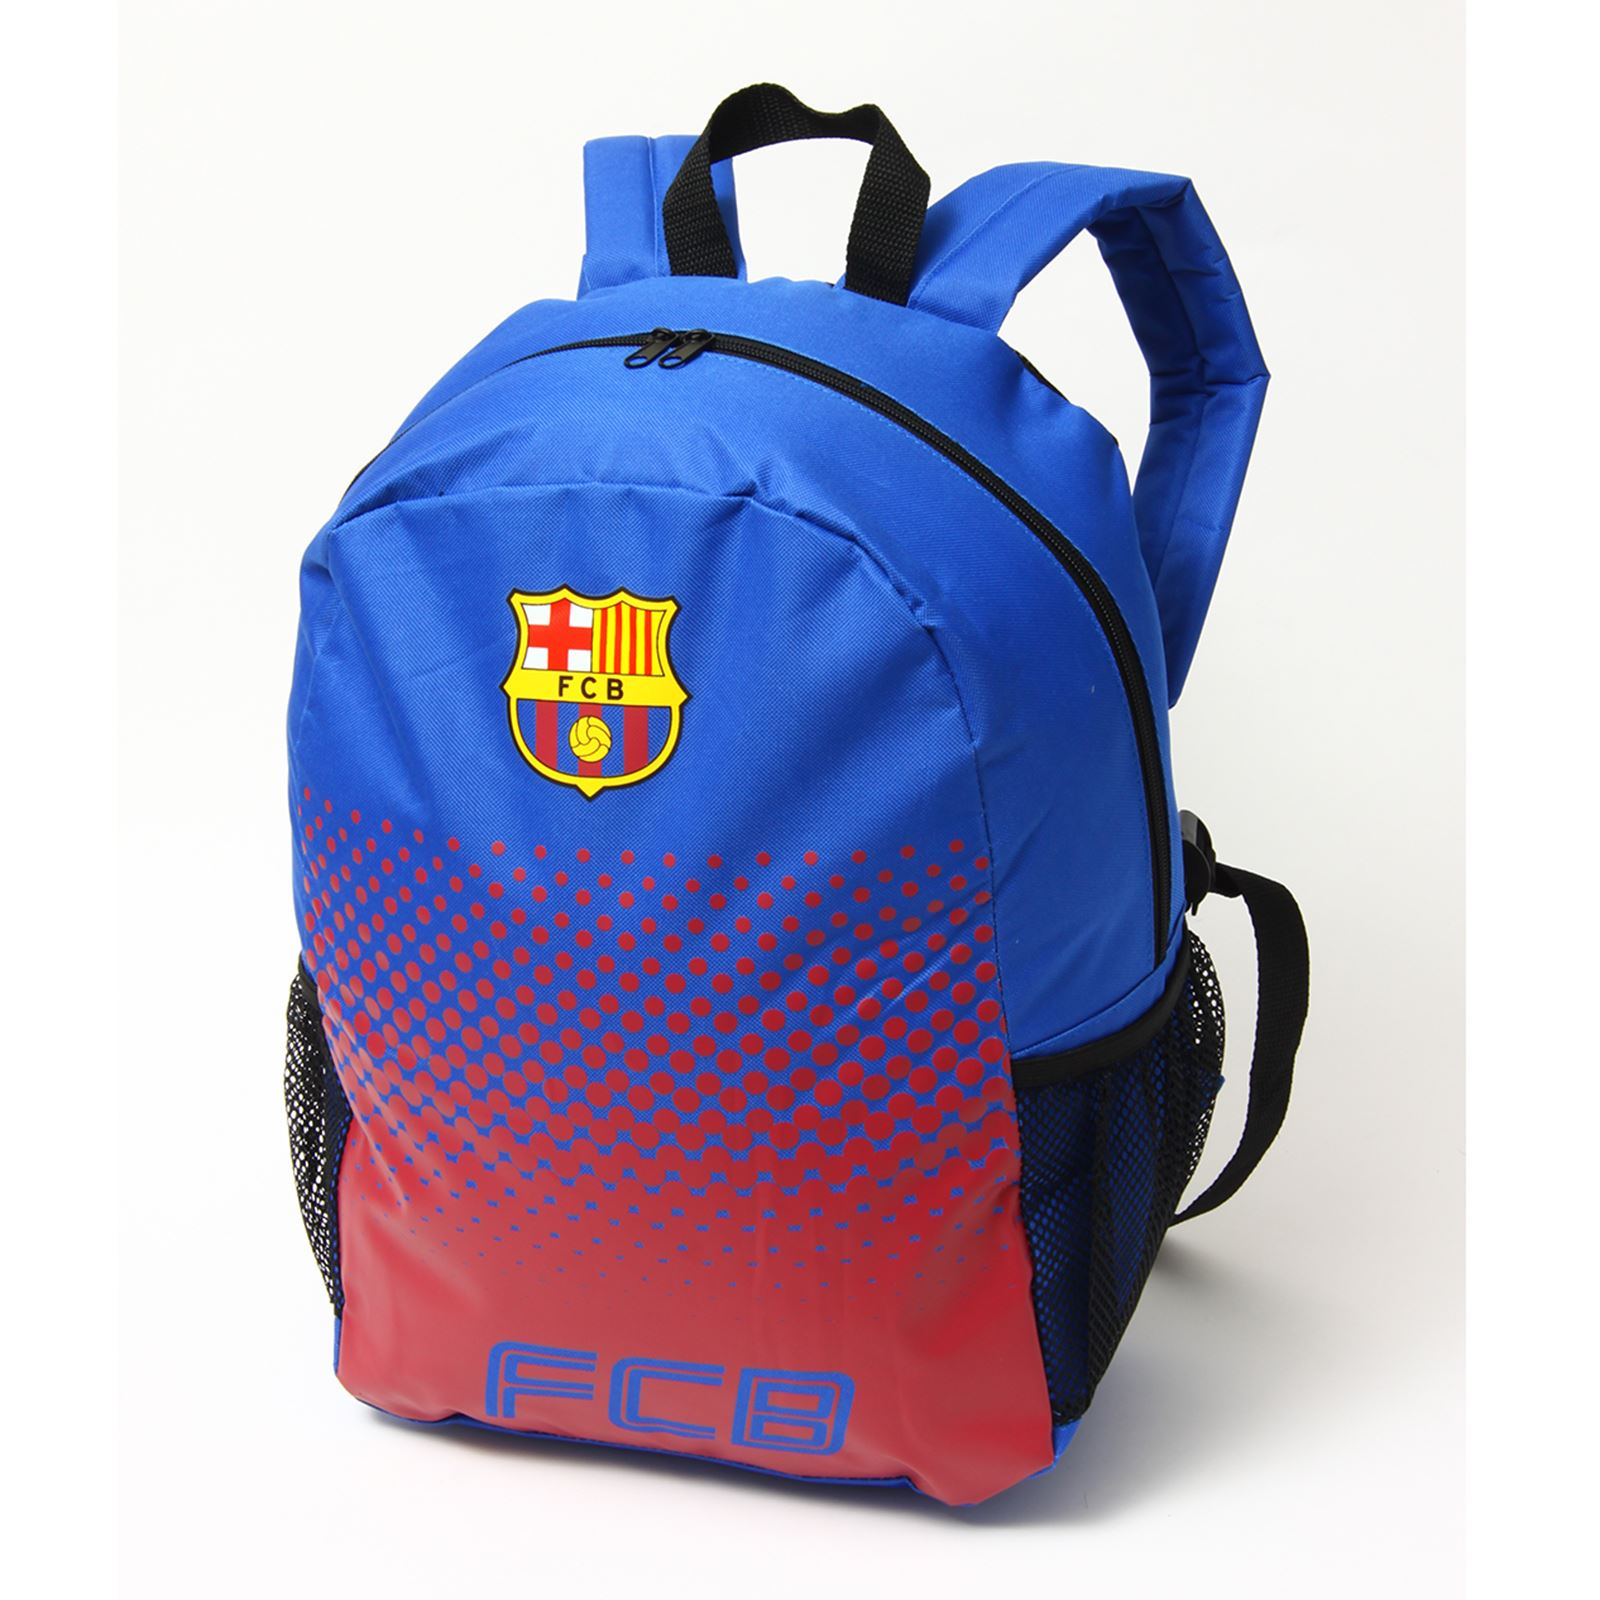 Find great deals on eBay for school bag boy. Shop with confidence.